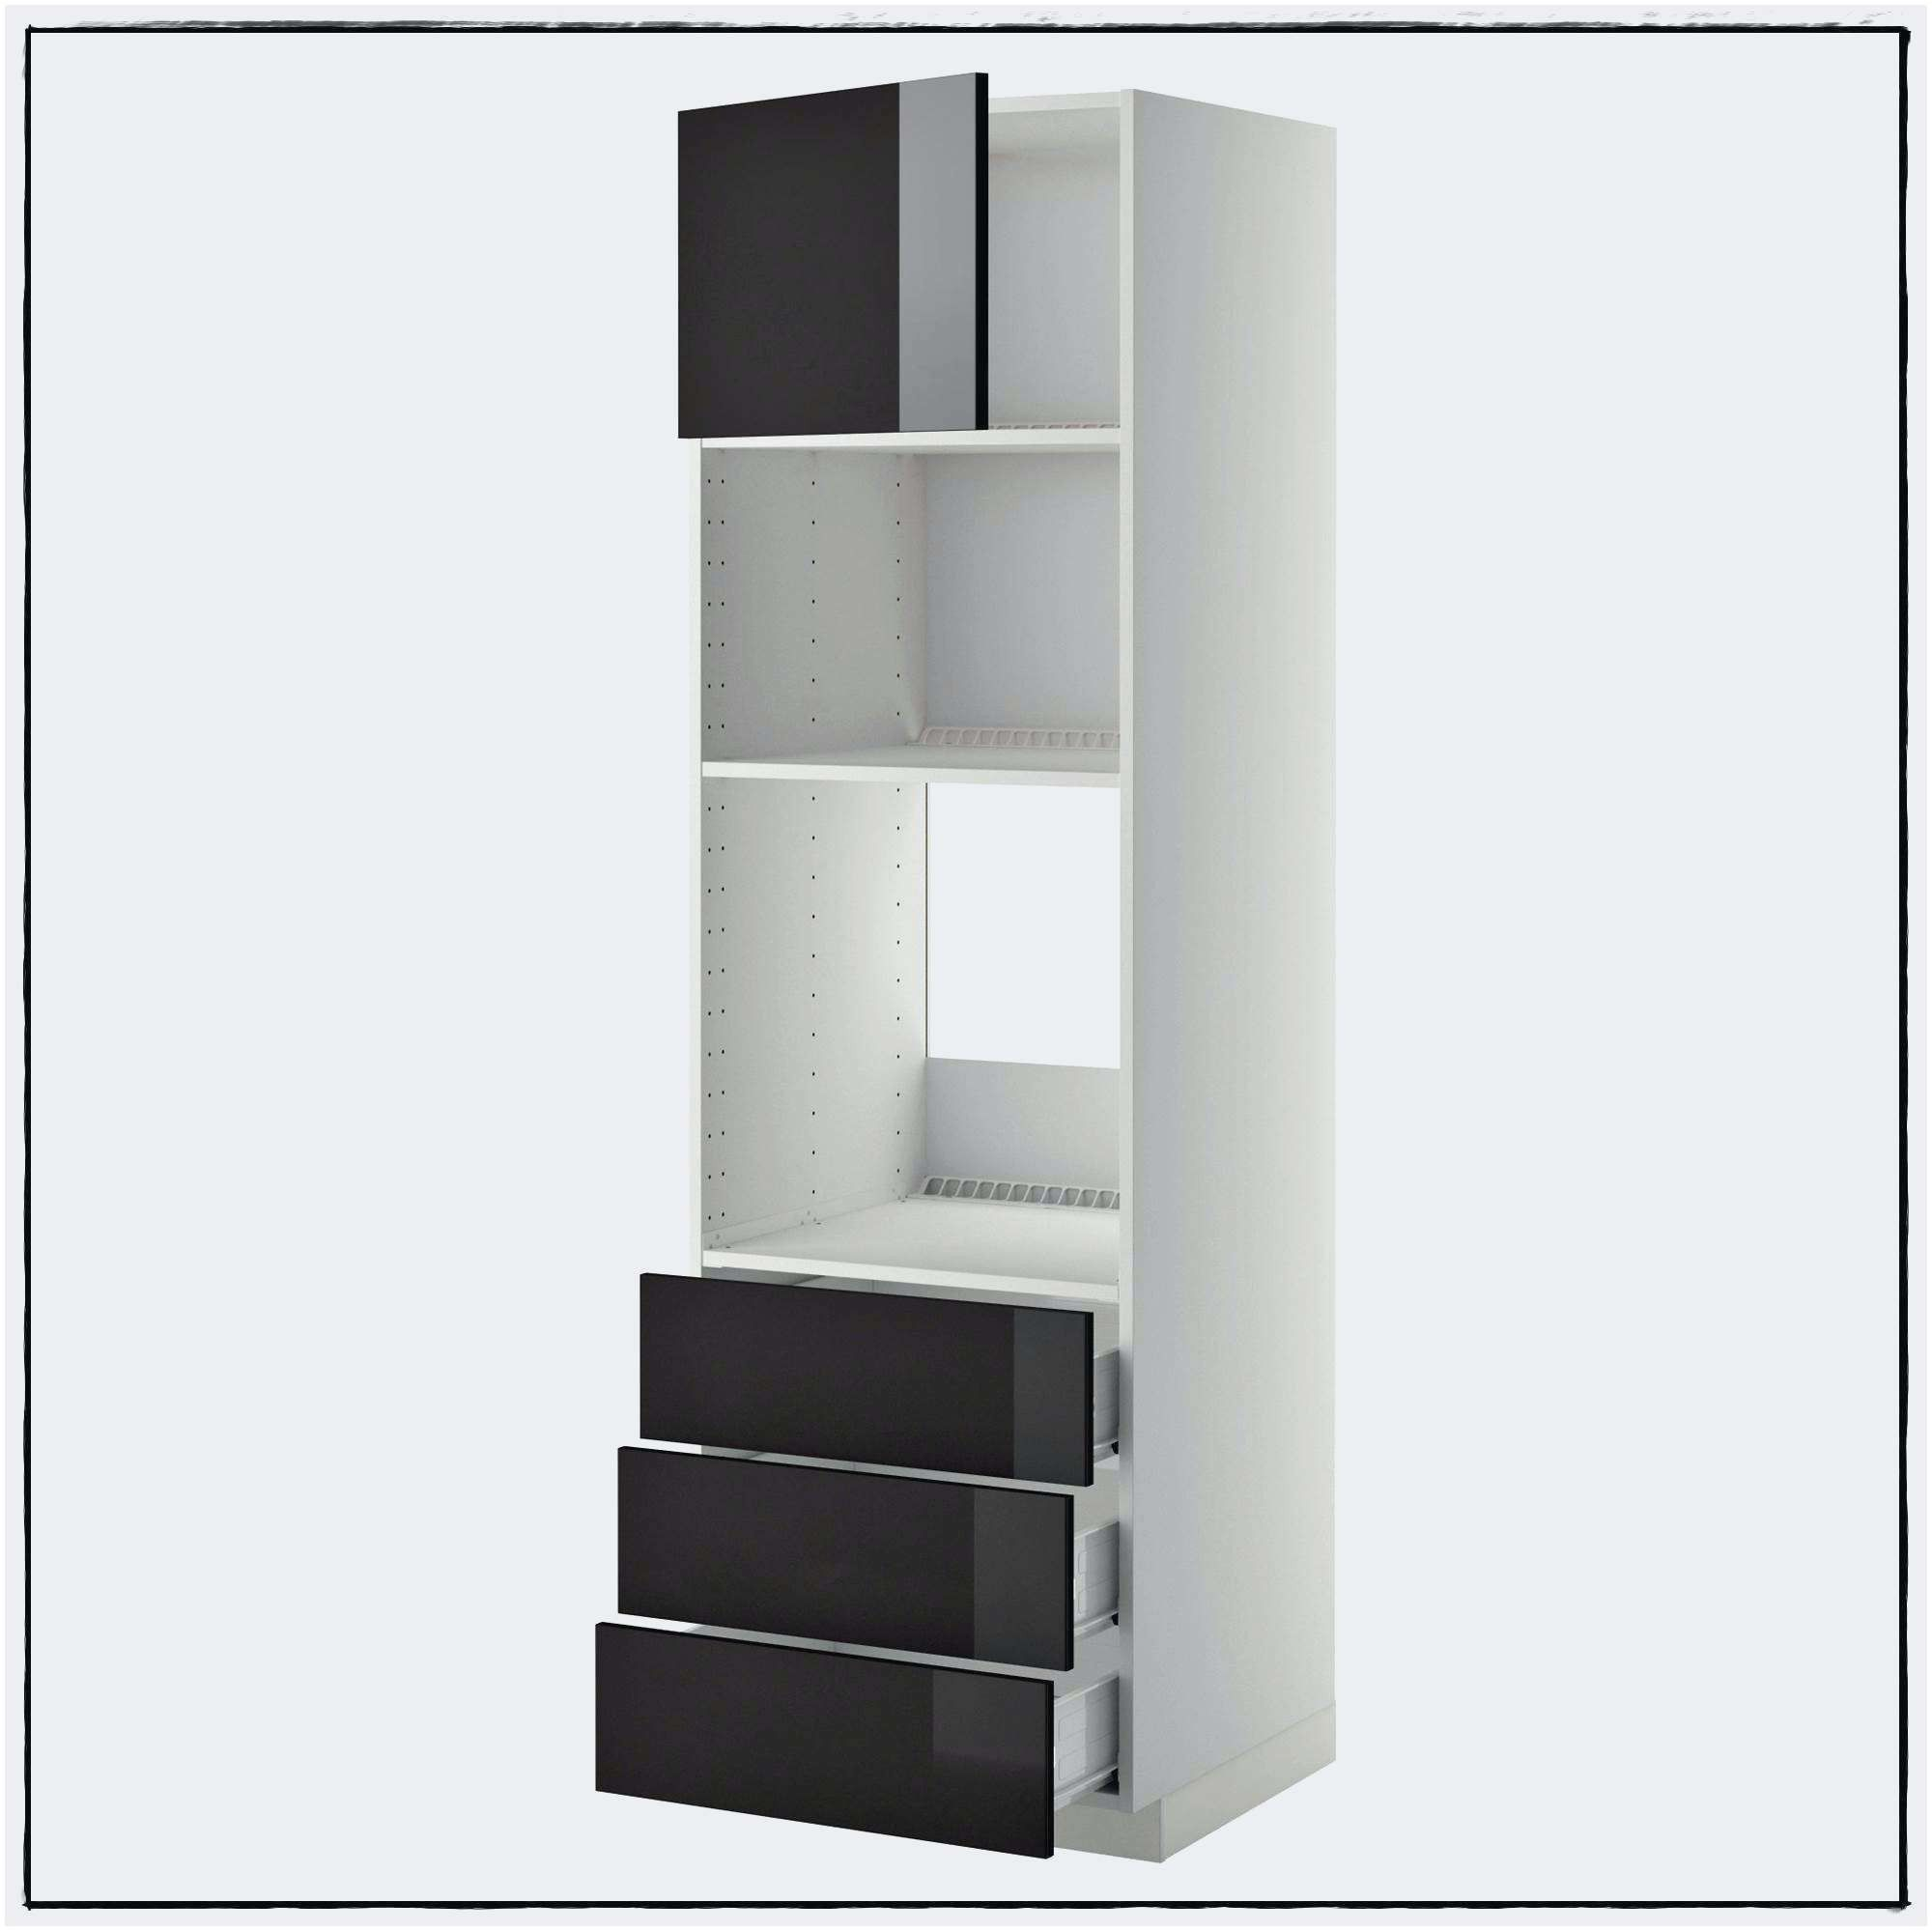 10 Conventionnellement Meuble Console Gifi Image Check More At Https Www Francescresswelsing Com 10 Conventionnellement Meuble Console Gifi Image Html Ikea